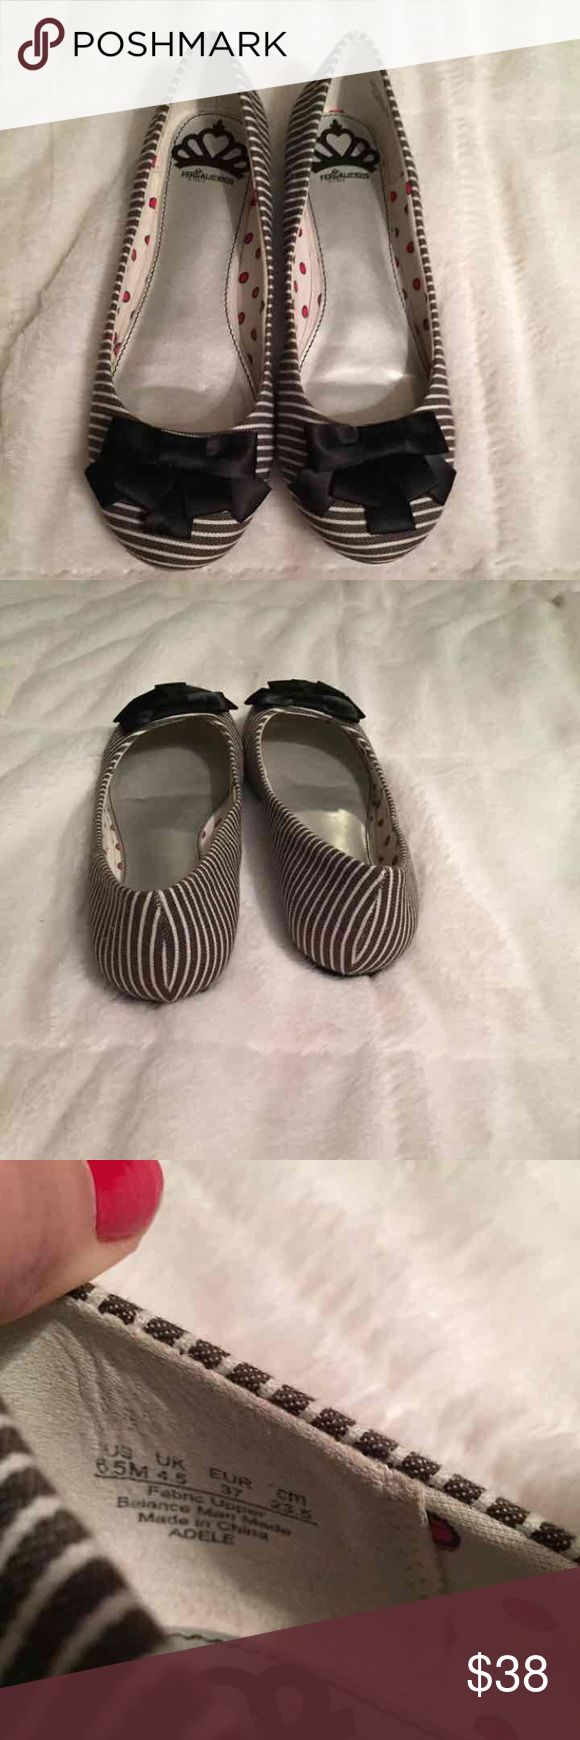 Fergalicious Adele Flats Sensible and stylish ballet flat. Navy blue and white striped with navy blue bow at the toe. Cushioned sole. Without box. Size 6.5 M . EU size 37.   Dress them up or down for your day and night looks.   Nautical / Navy theme Fergalicious Shoes Flats & Loafers